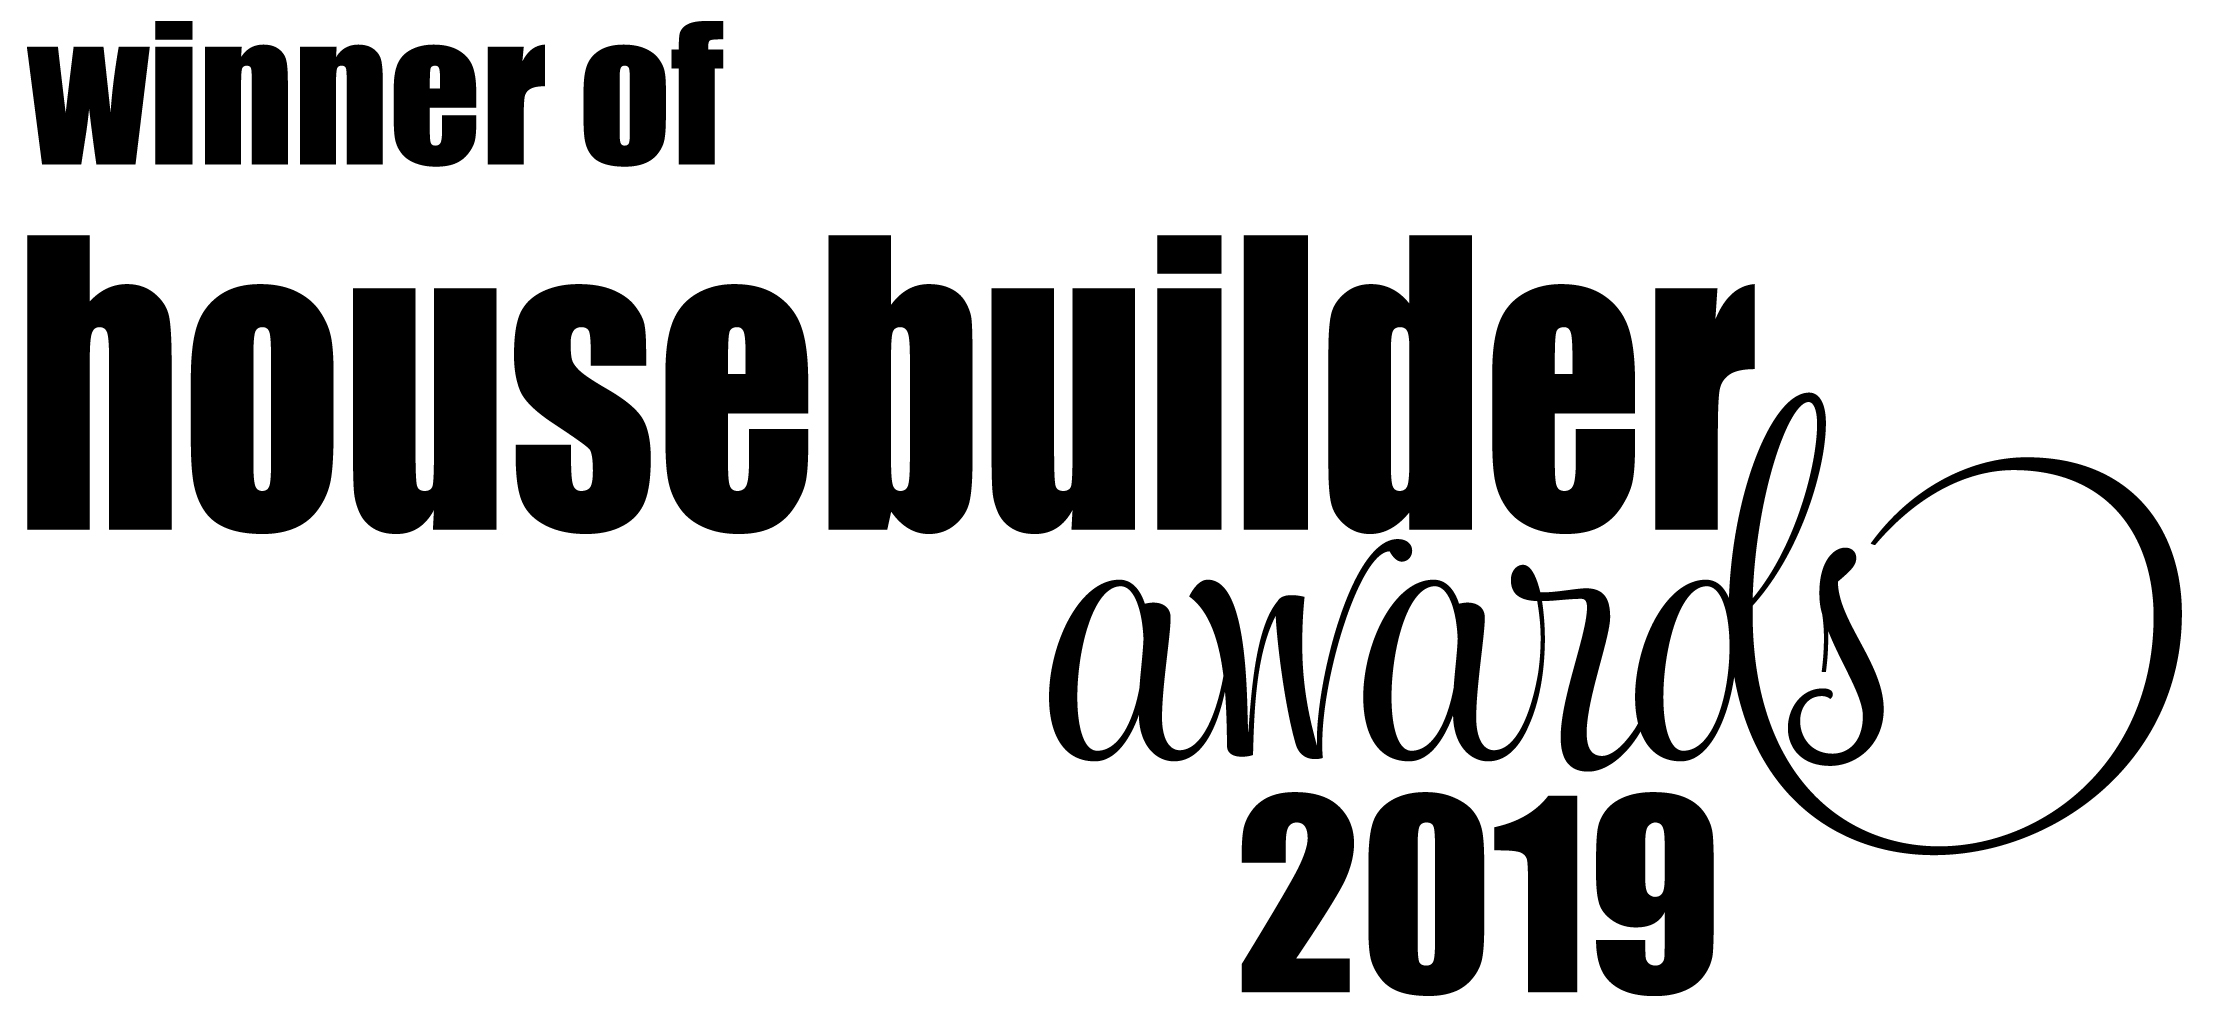 Large Housebuilder of the year 2019